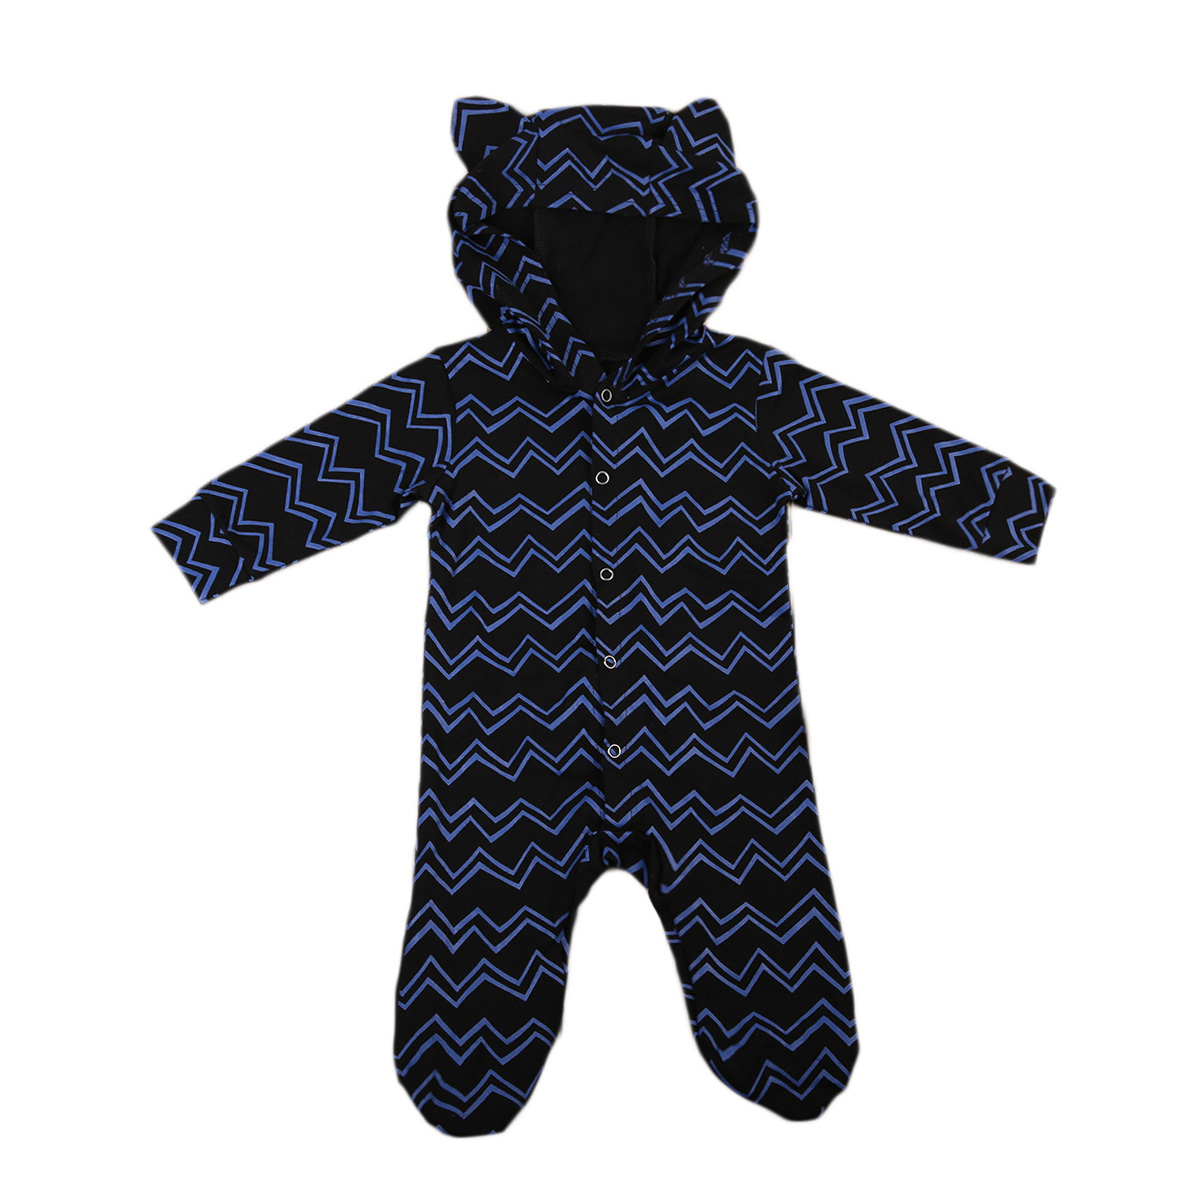 Cute Newborn Infant Baby Boys Ear Hooded Rompers Autumn Cotton Long Sleeve Romper Jumpsuit Outfits Children Clothing